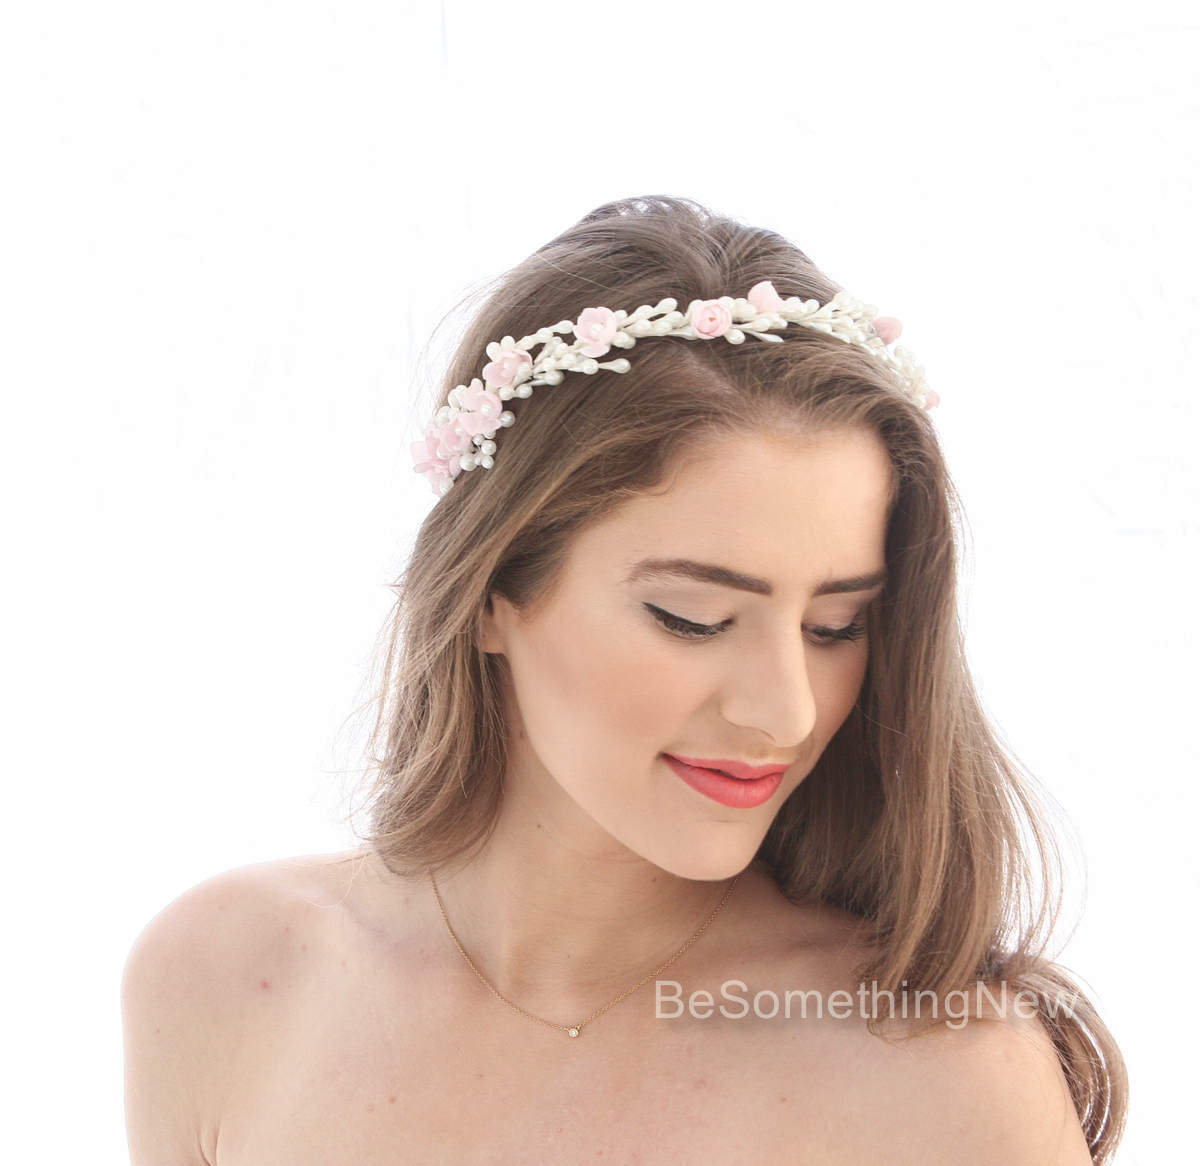 Cherry Blossom and Vintage Wax Flower Crown Wedding Headpiece, Wax Bud Vintage Bridal Halo with Pink Vintage Flowers, Pearl Wedding Tiara – Be Something New